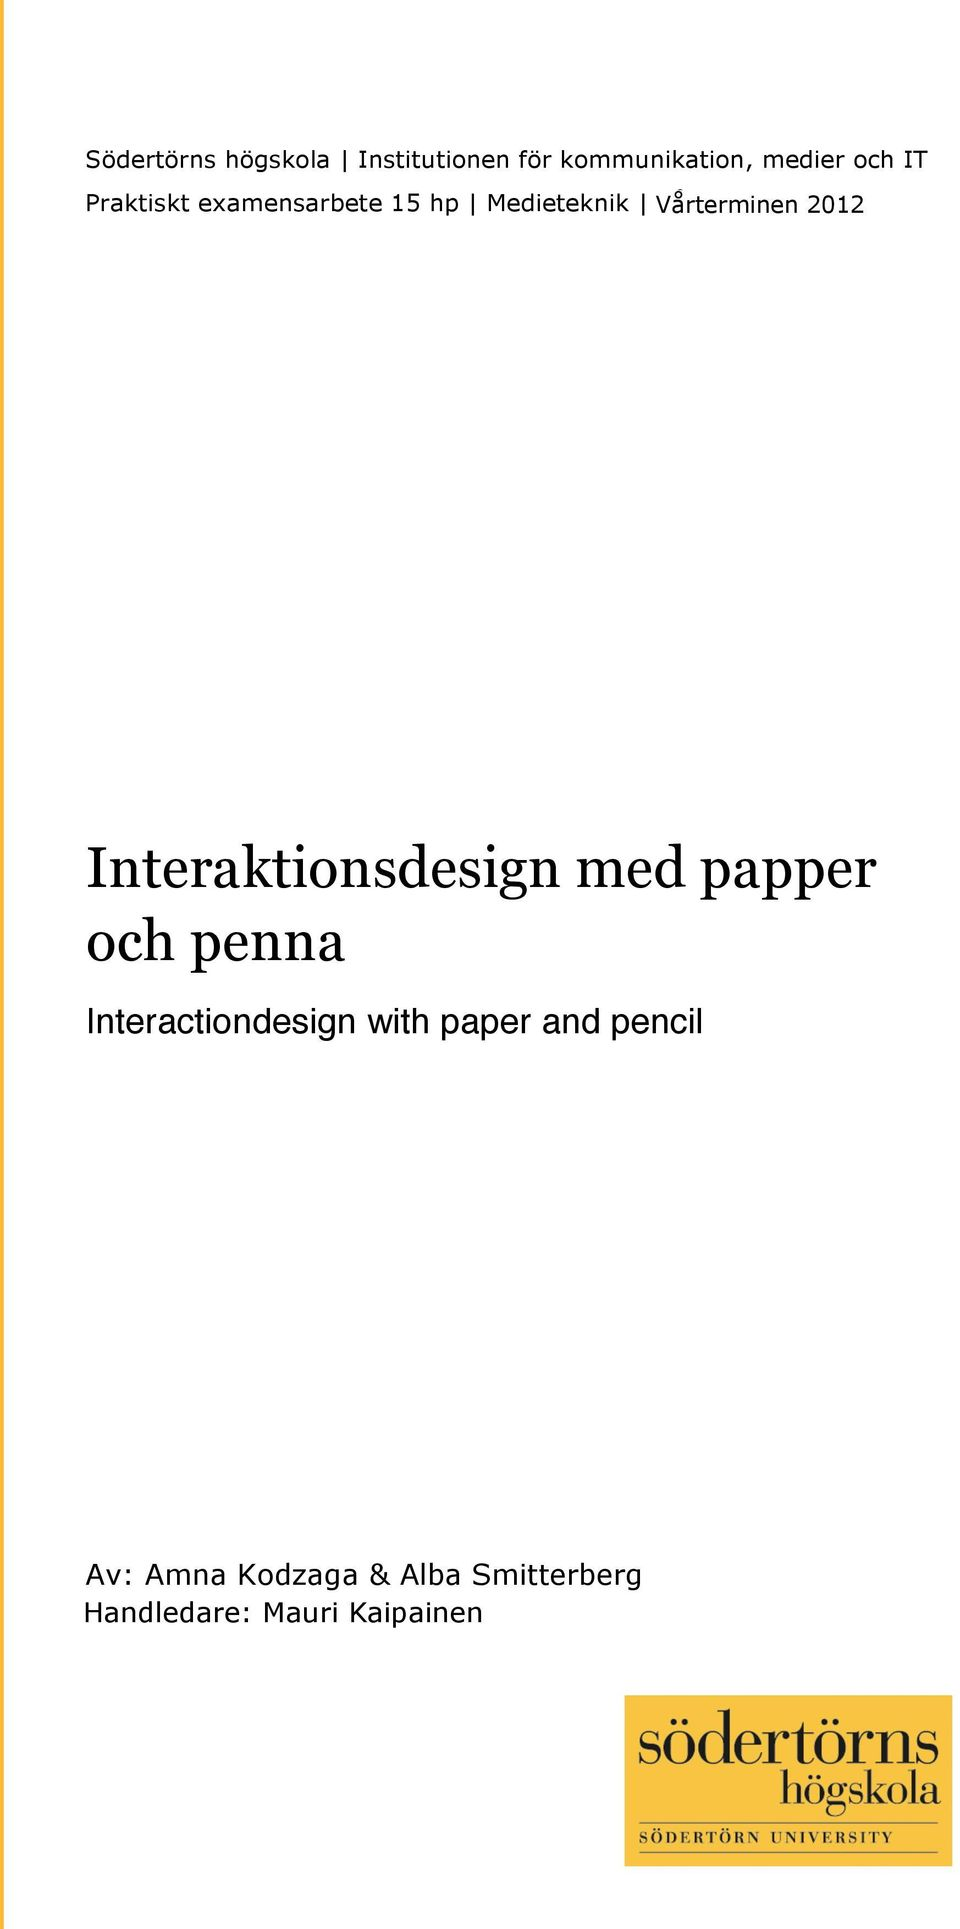 penna Interactiondesign with paper and pencil Av: Amna